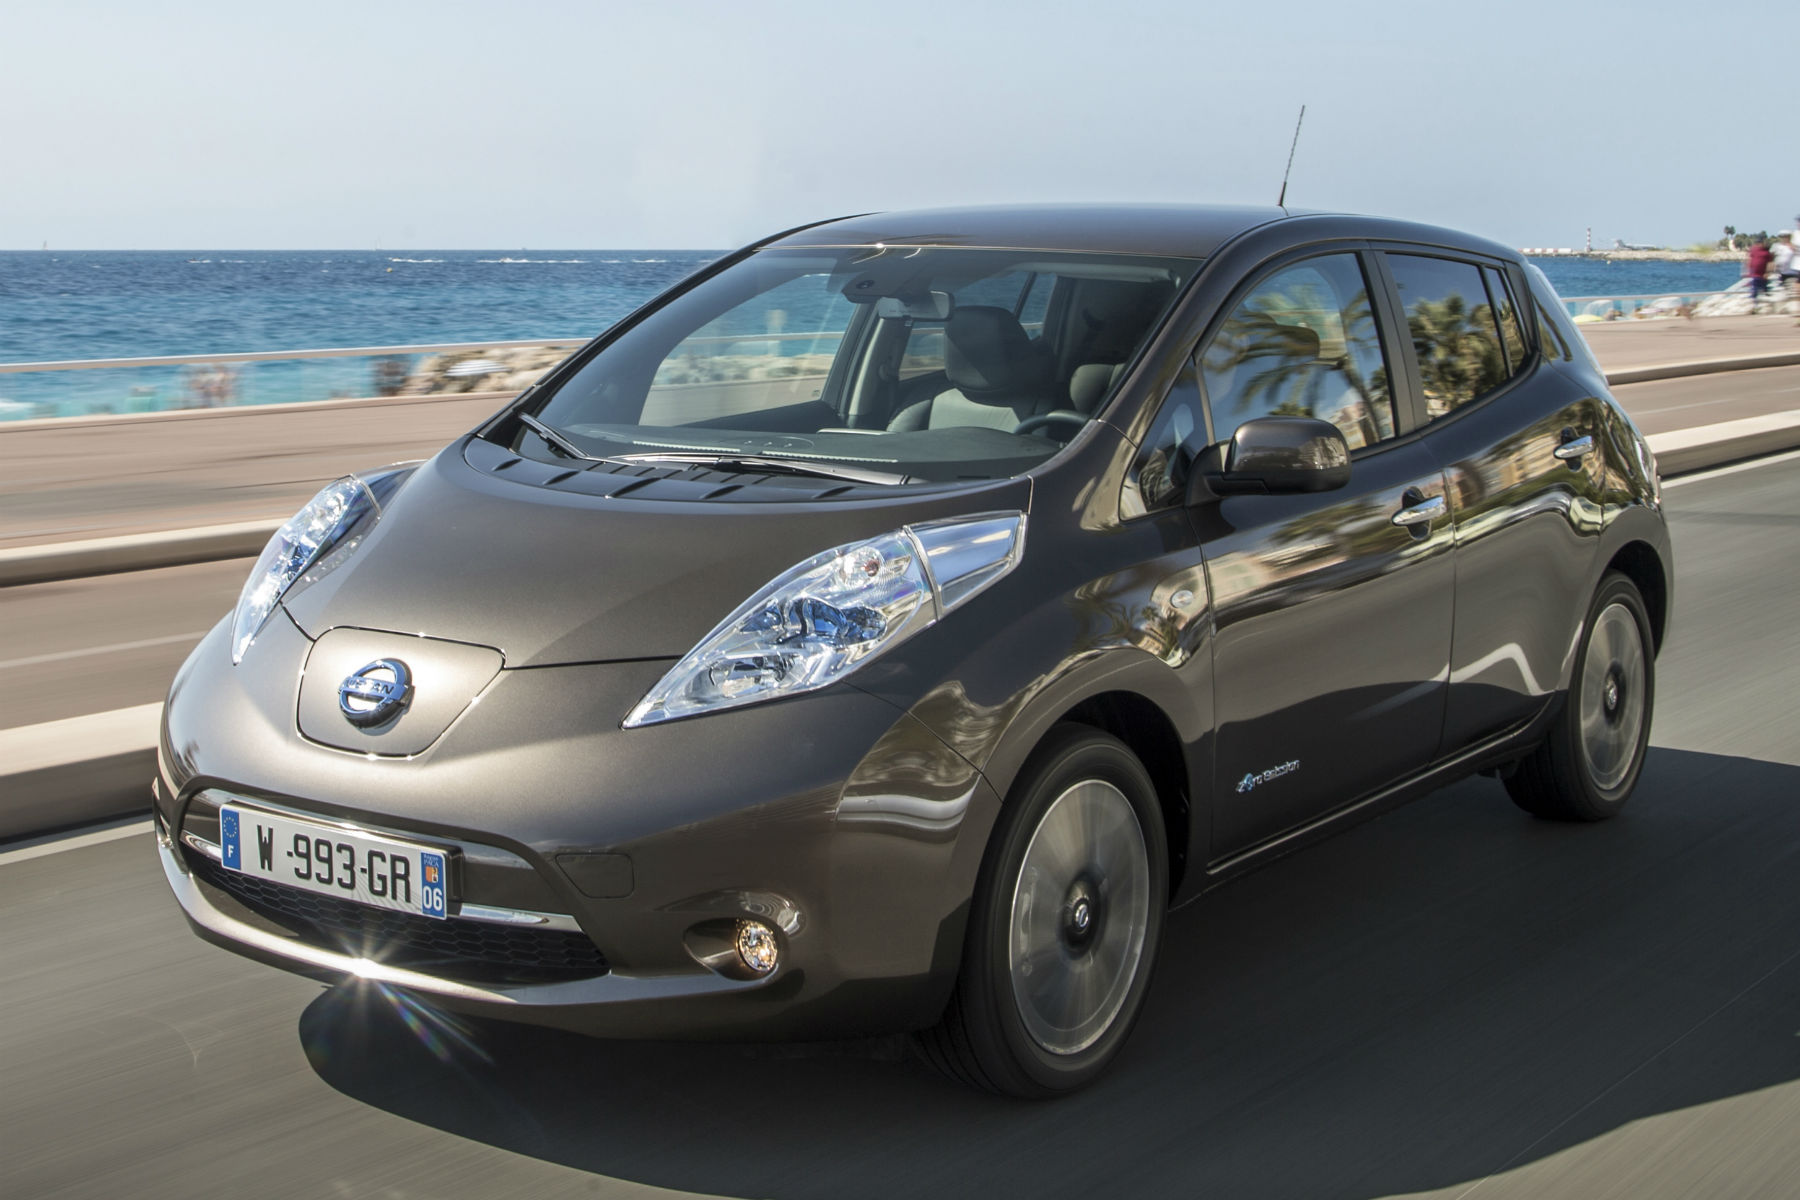 2015 Nissan Leaf 30kWh review: Verdict